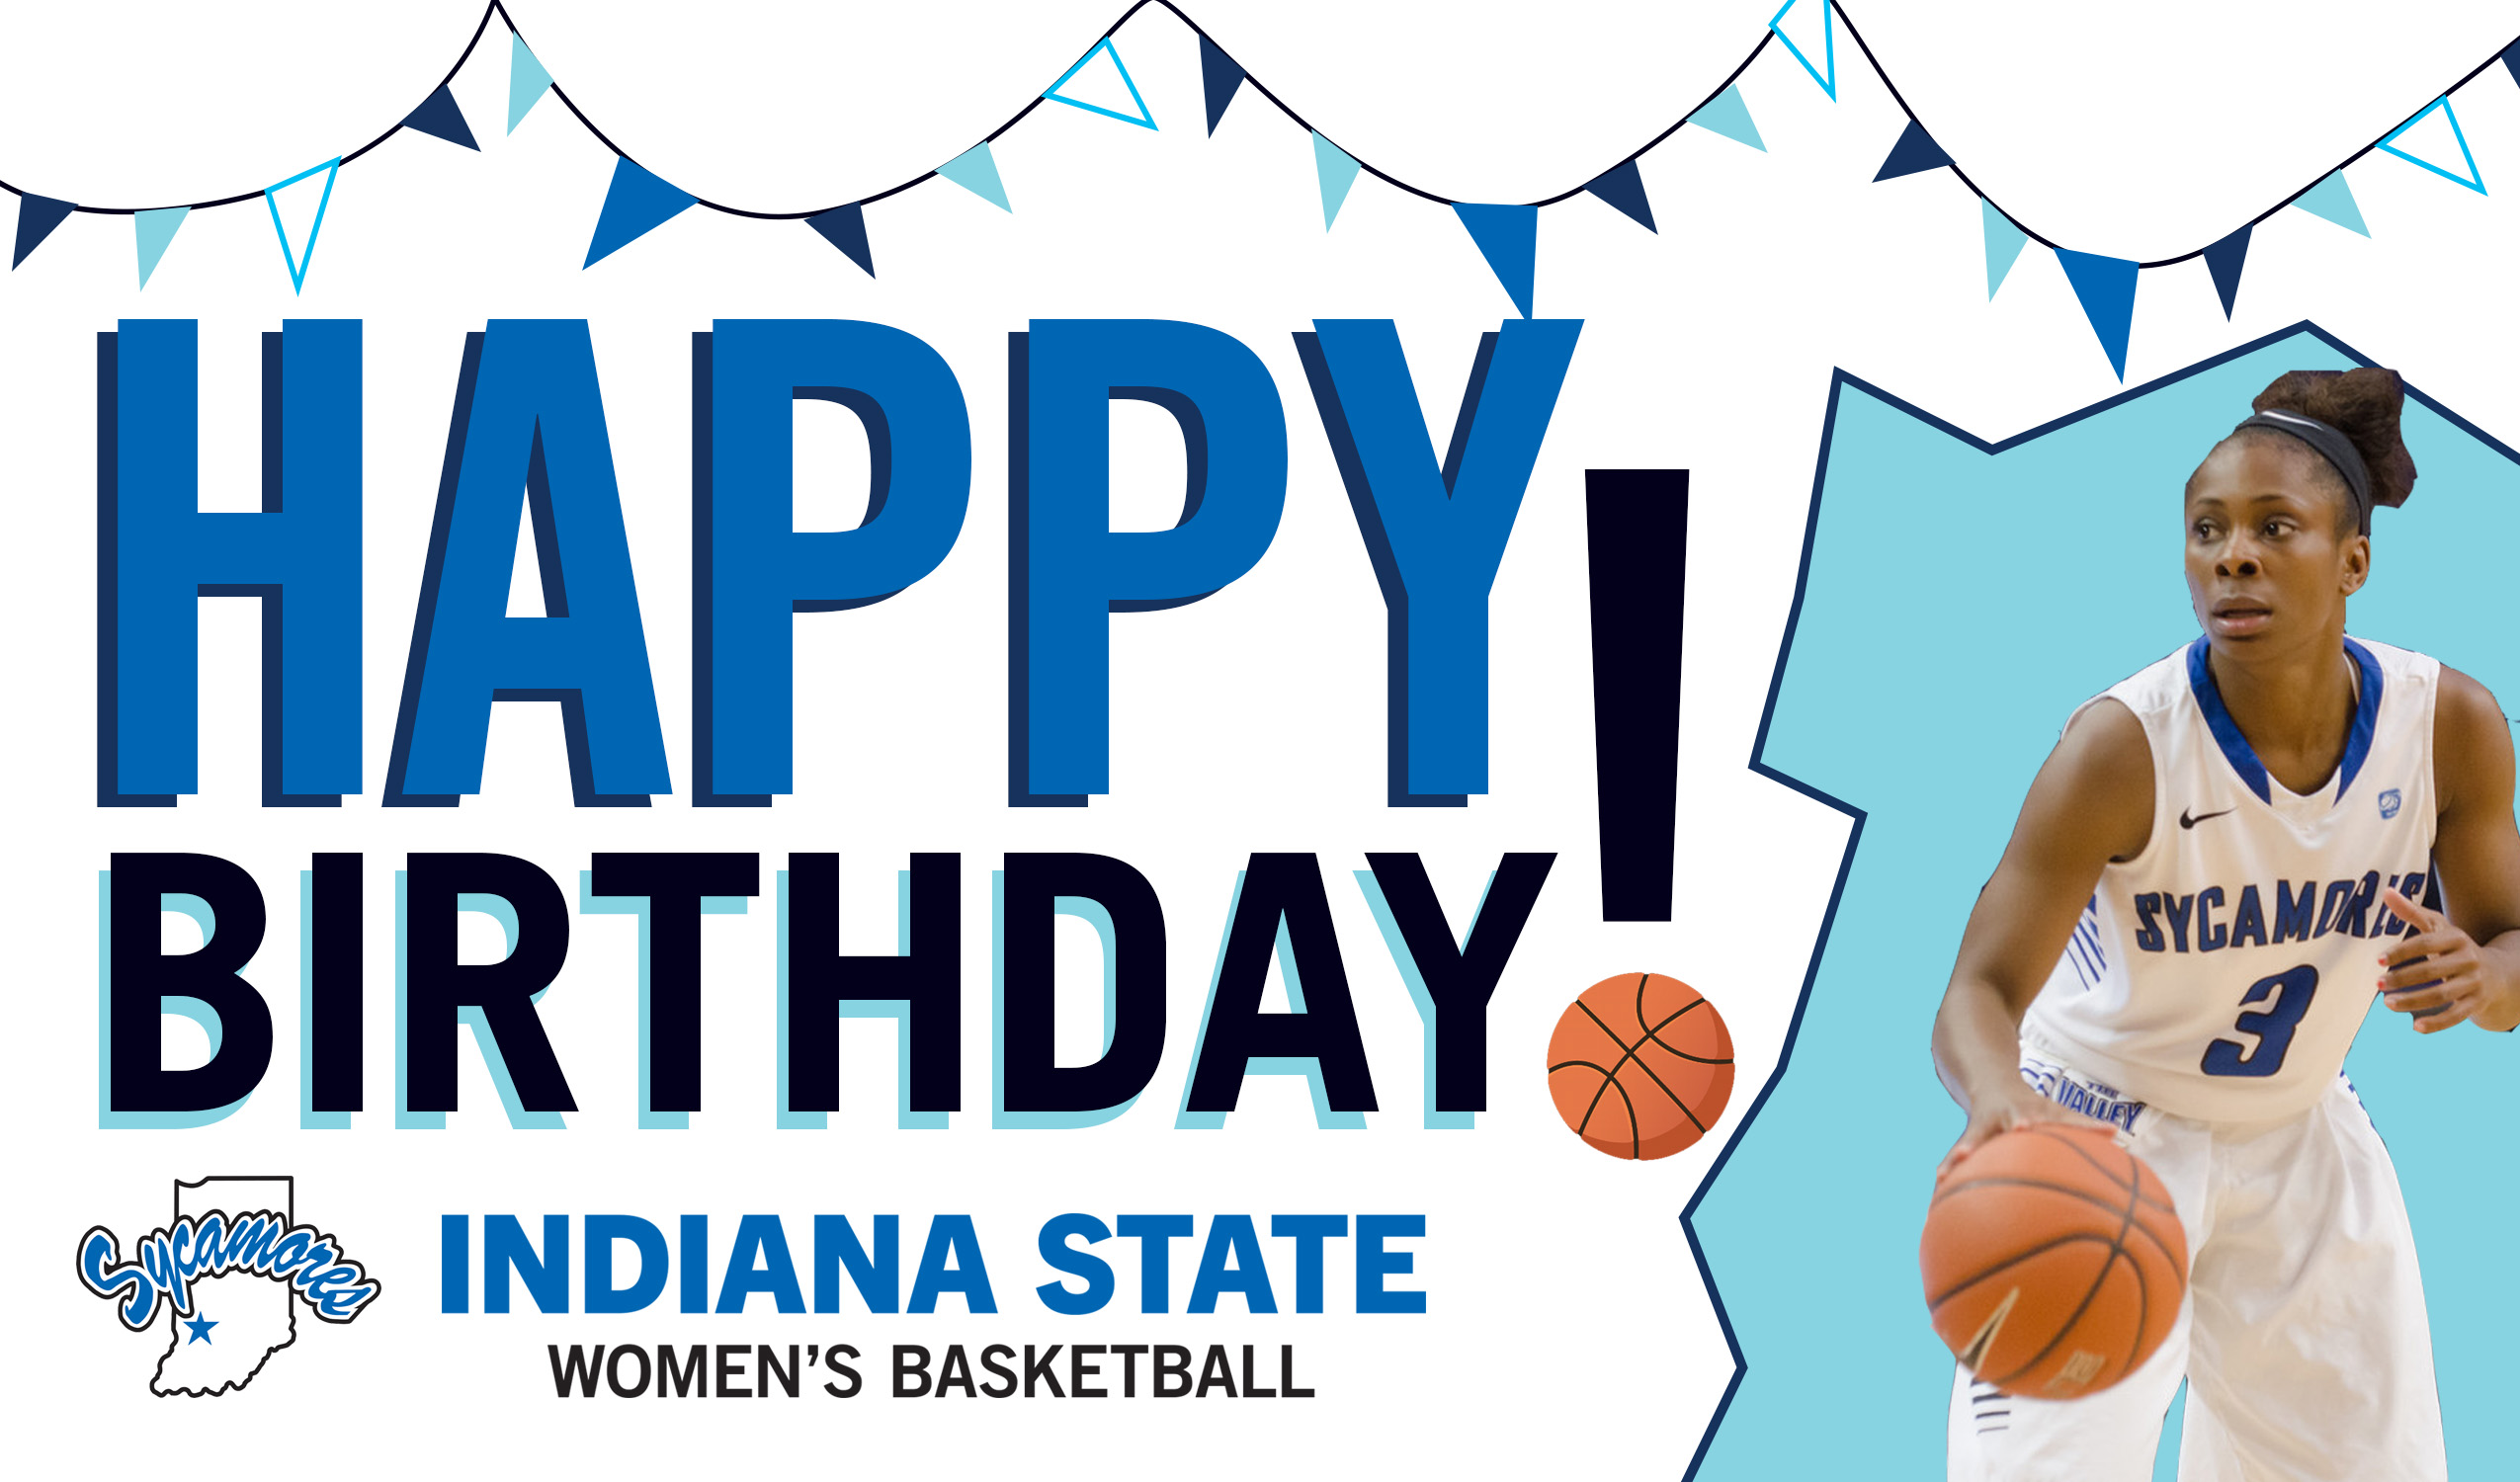 Women's Basketball Birthday